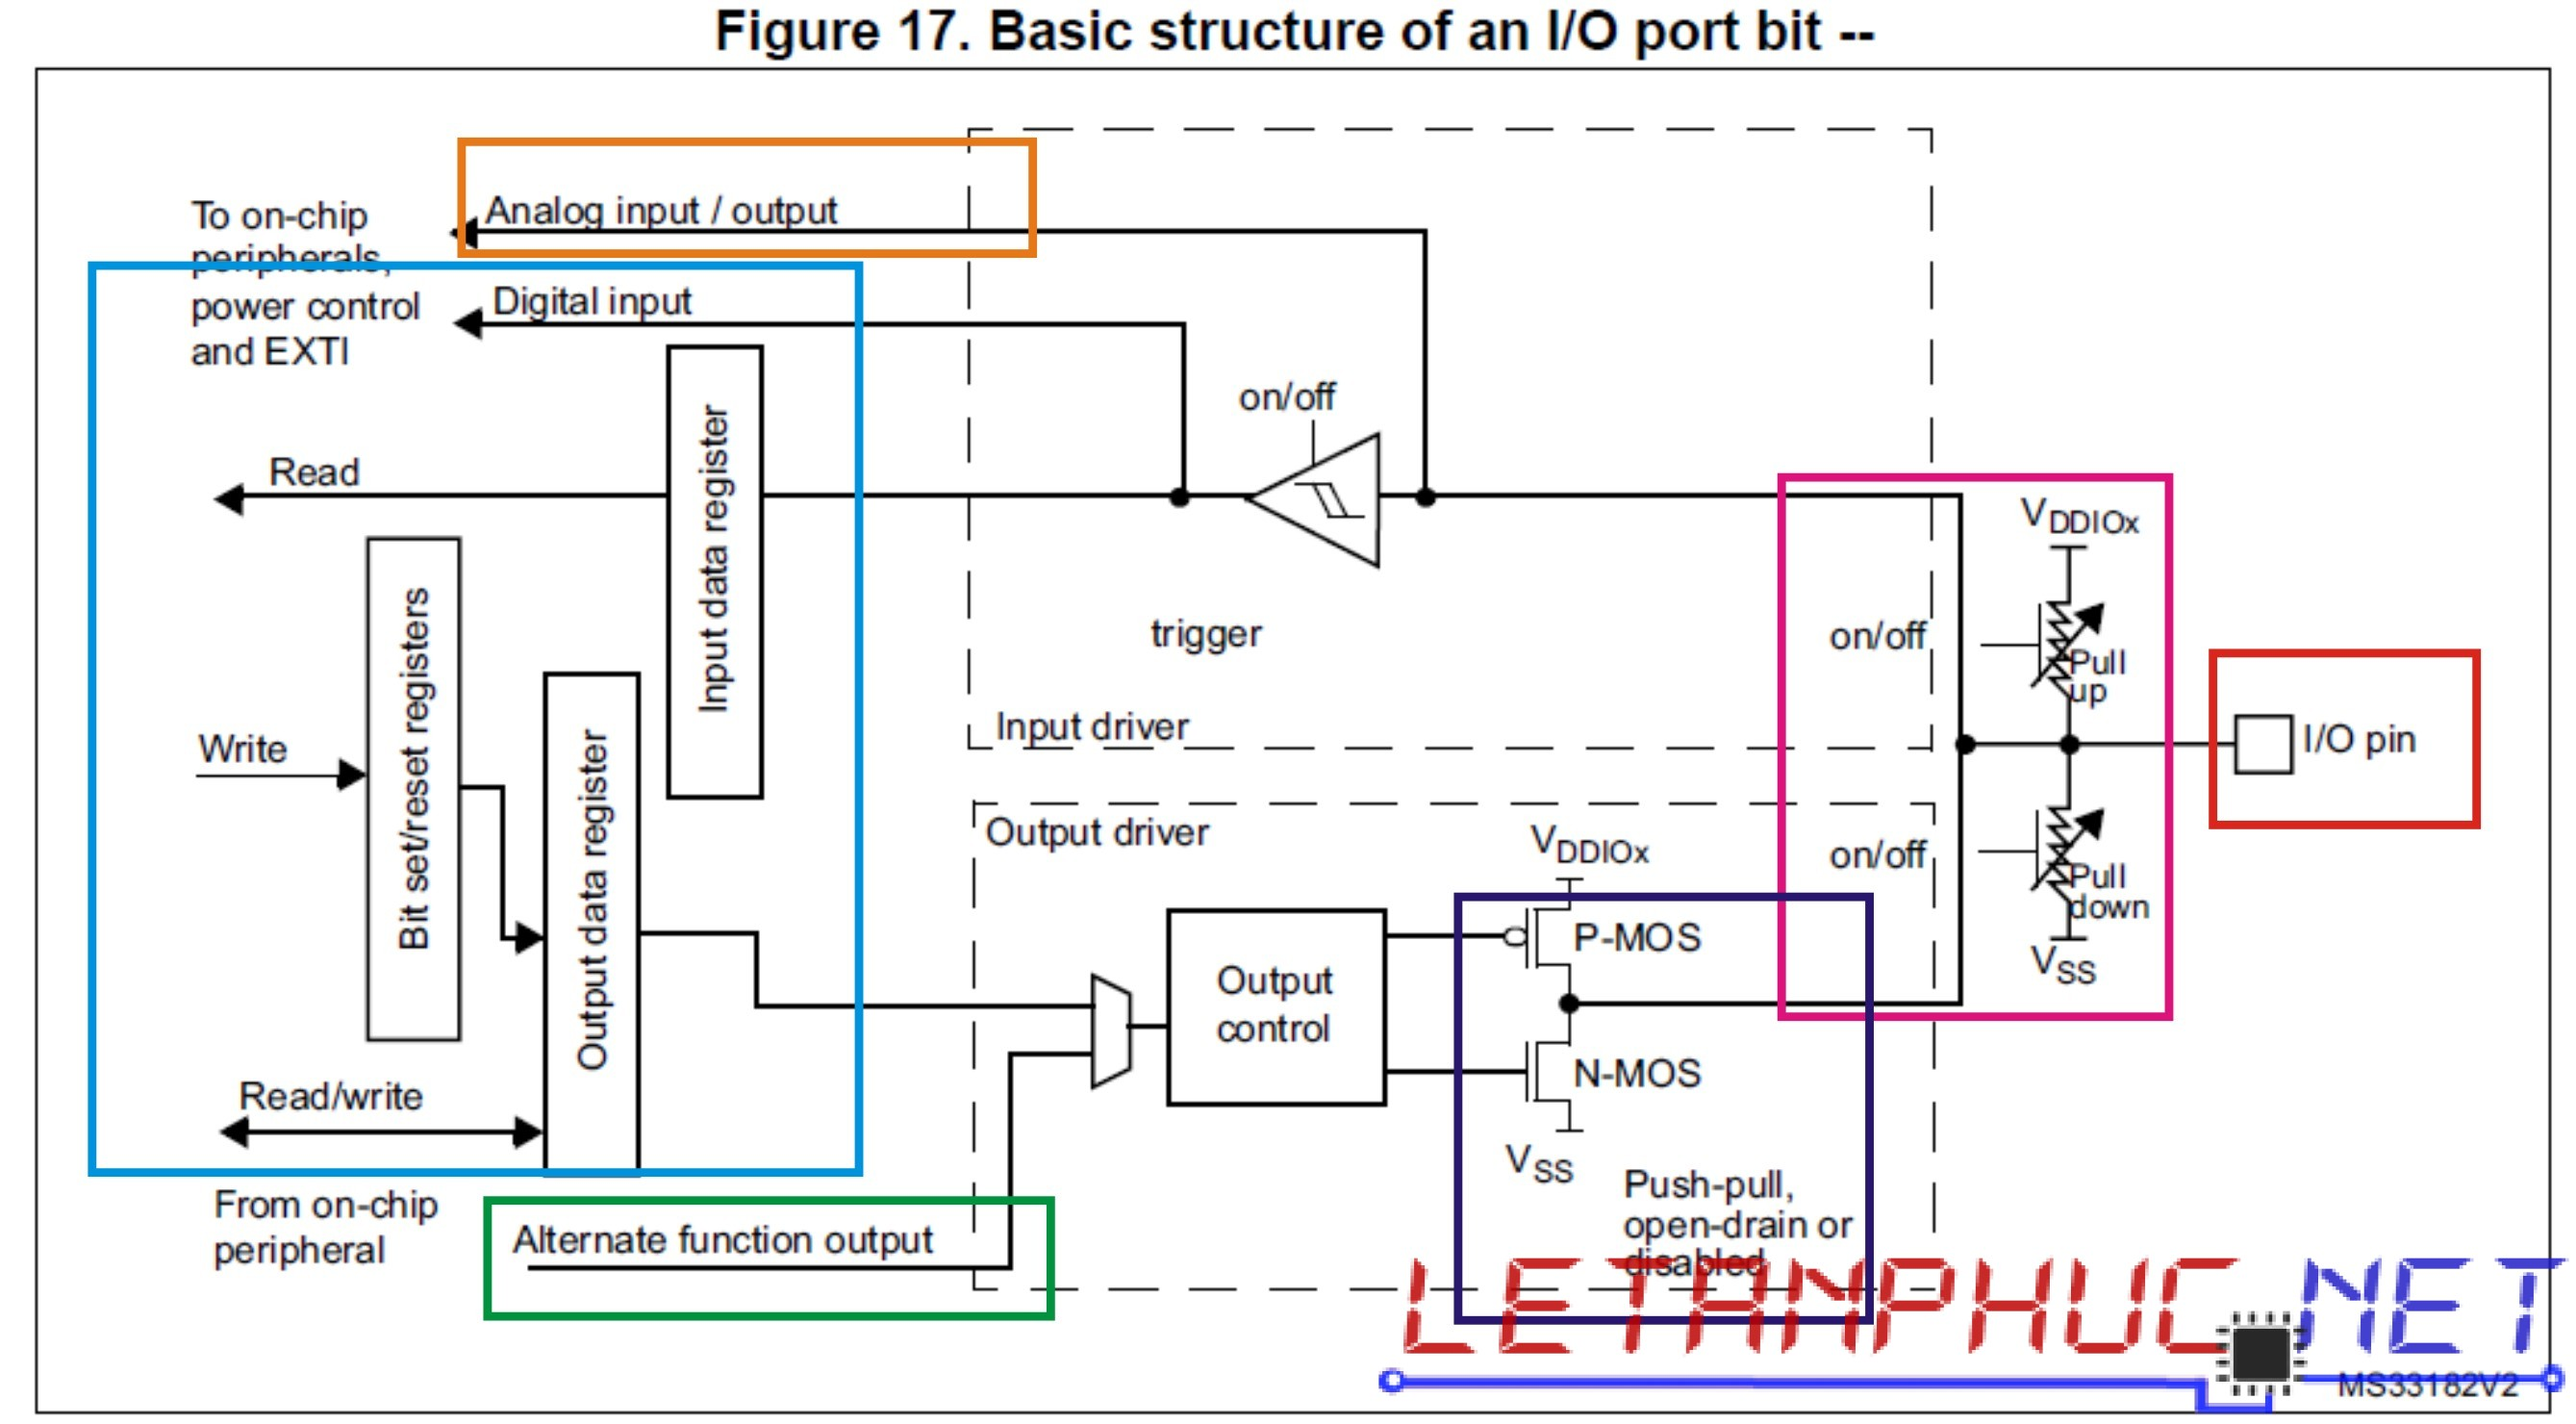 IO 3.3V page 125 - reference manual